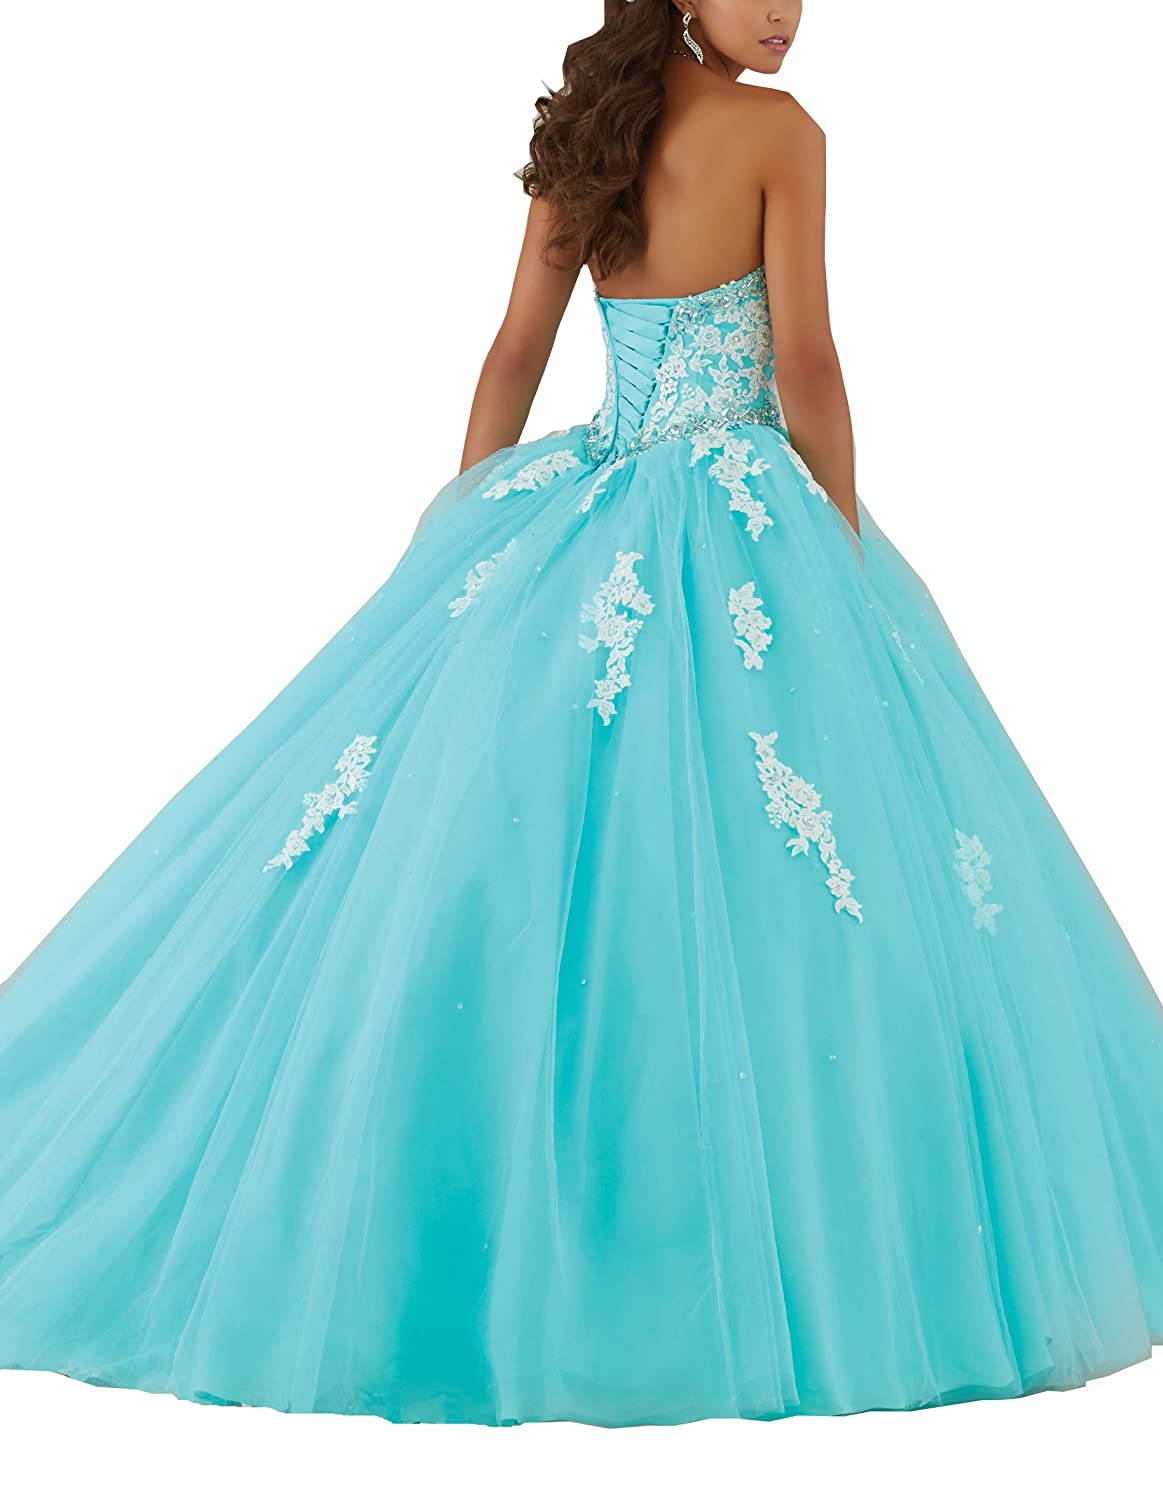 Amazon.com: YinWen Womens Sweetheart Strapless Lace Beaded Formal Prom Quinceanera Dress: Clothing